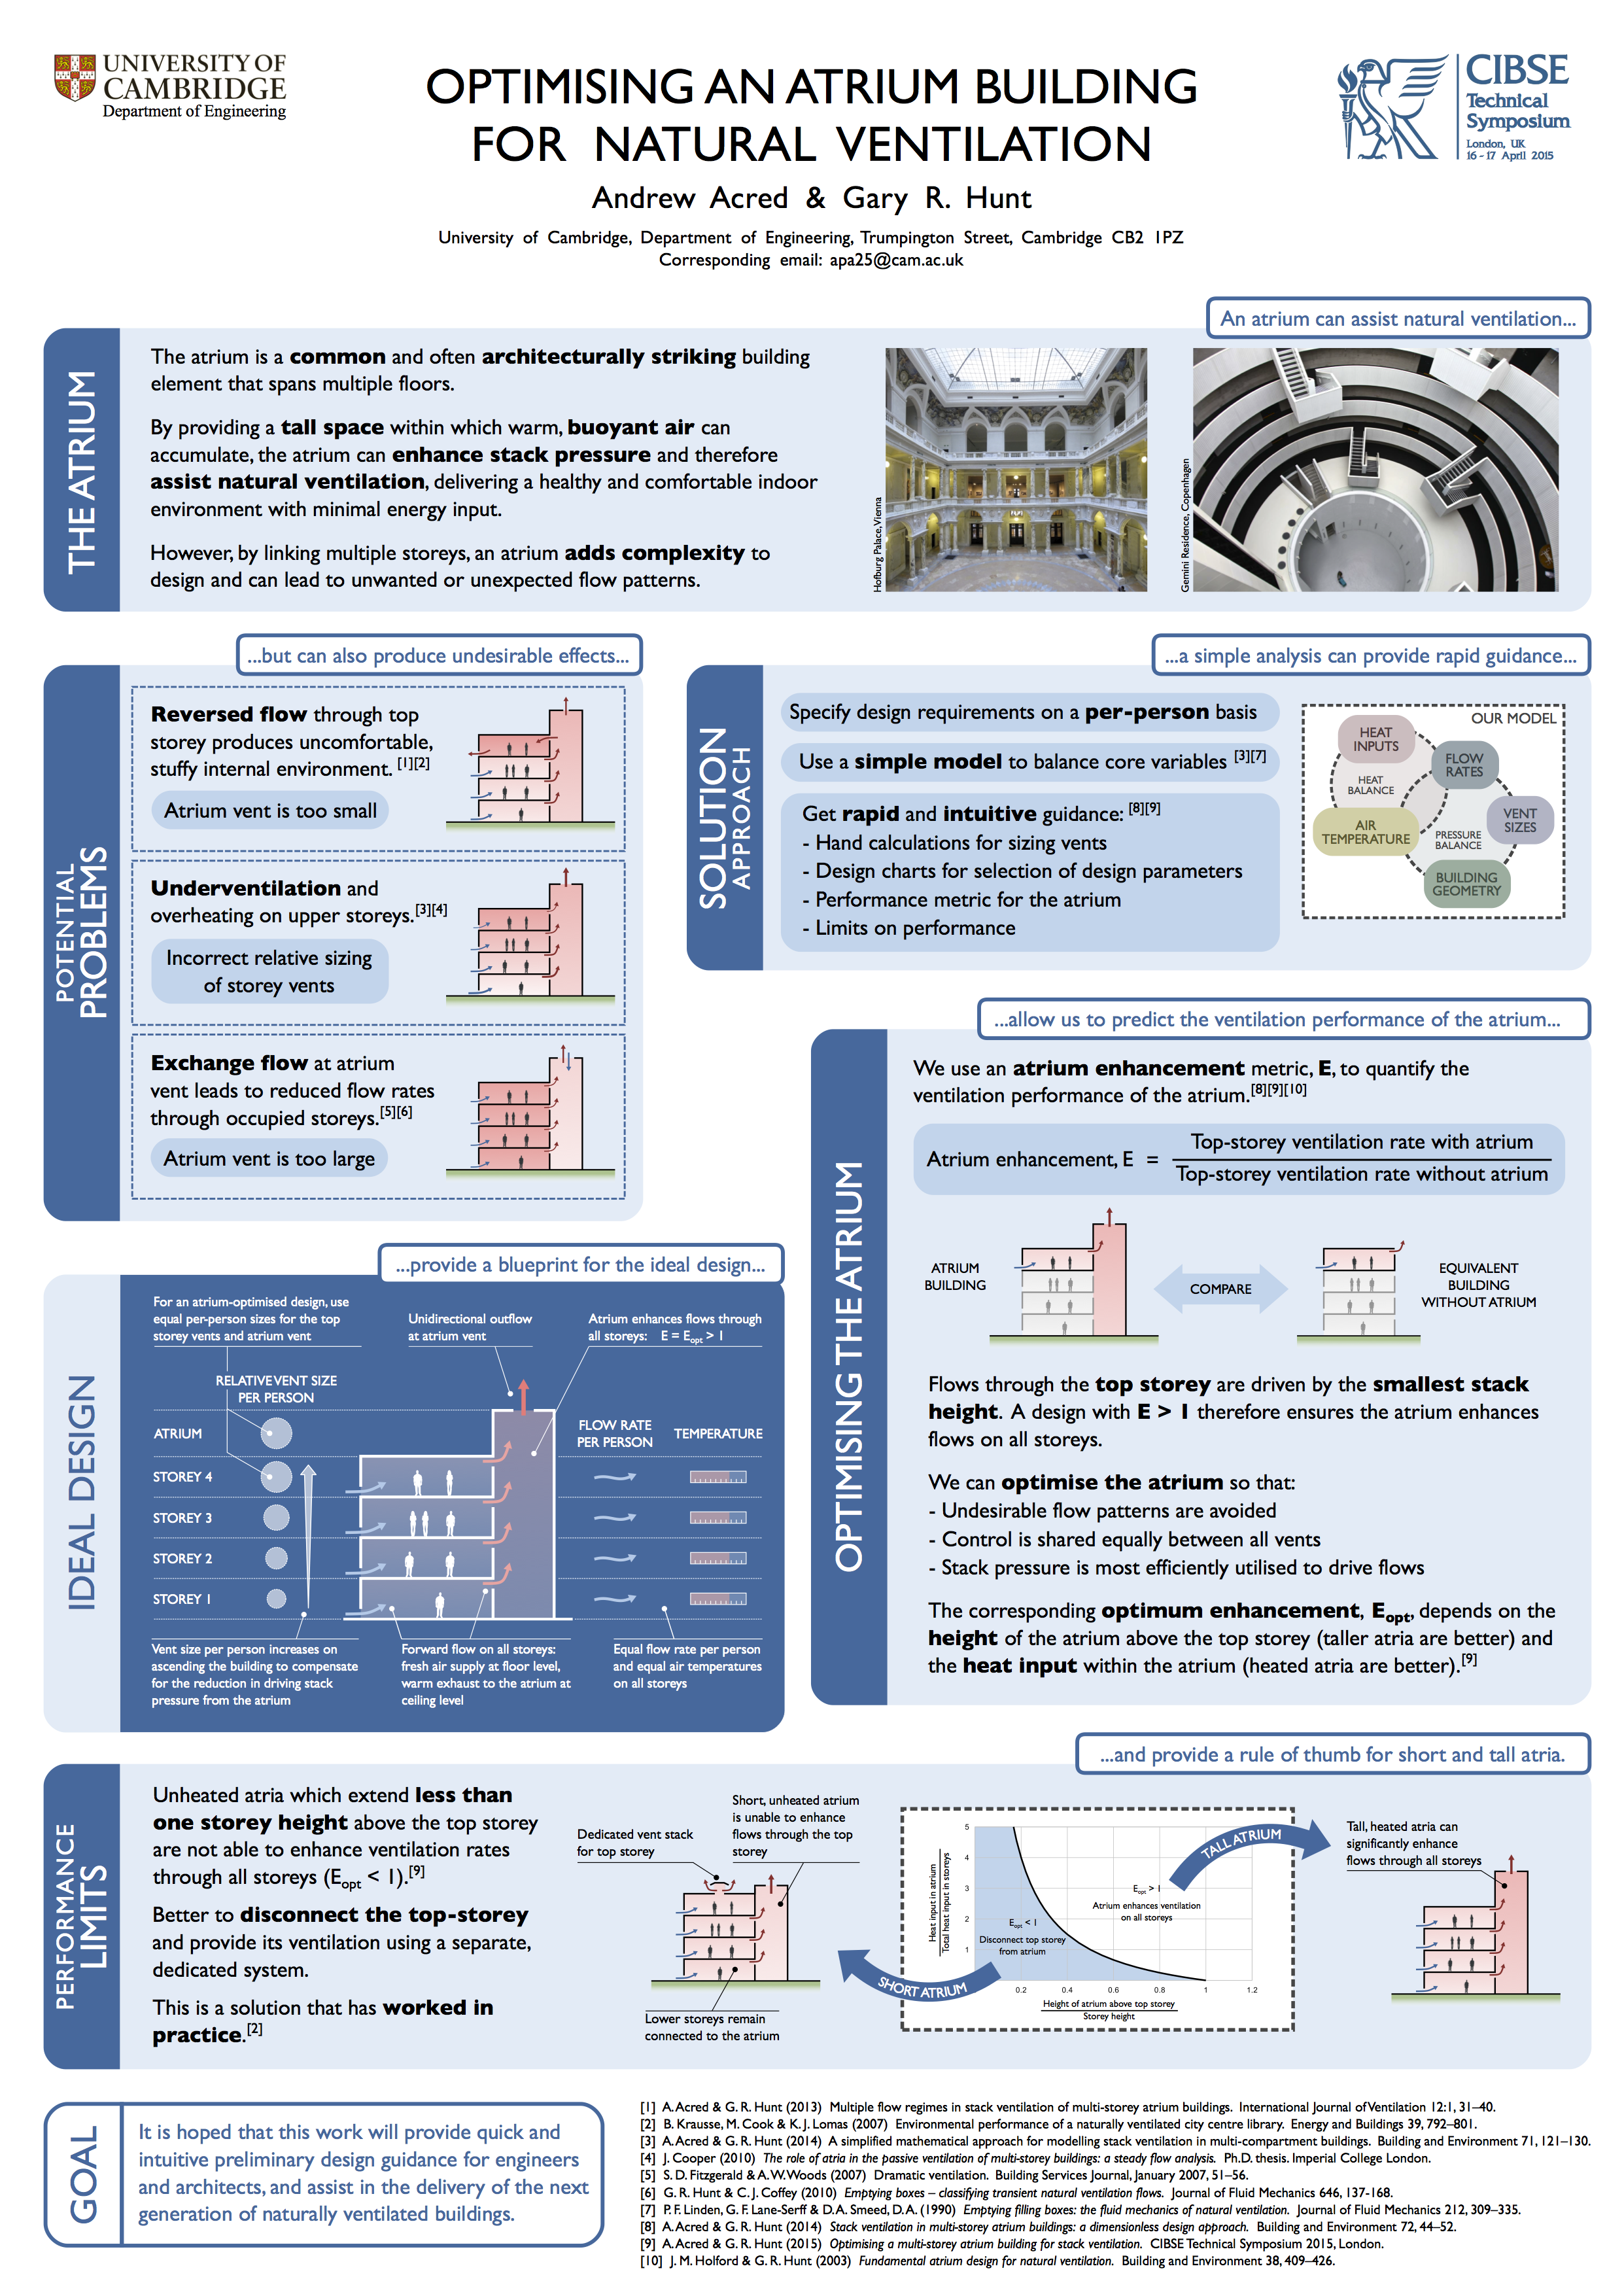 Optimising an atrium building for stack ventilation. Poster for the 2015 CIBSE Technical Symposium at UCL, London.